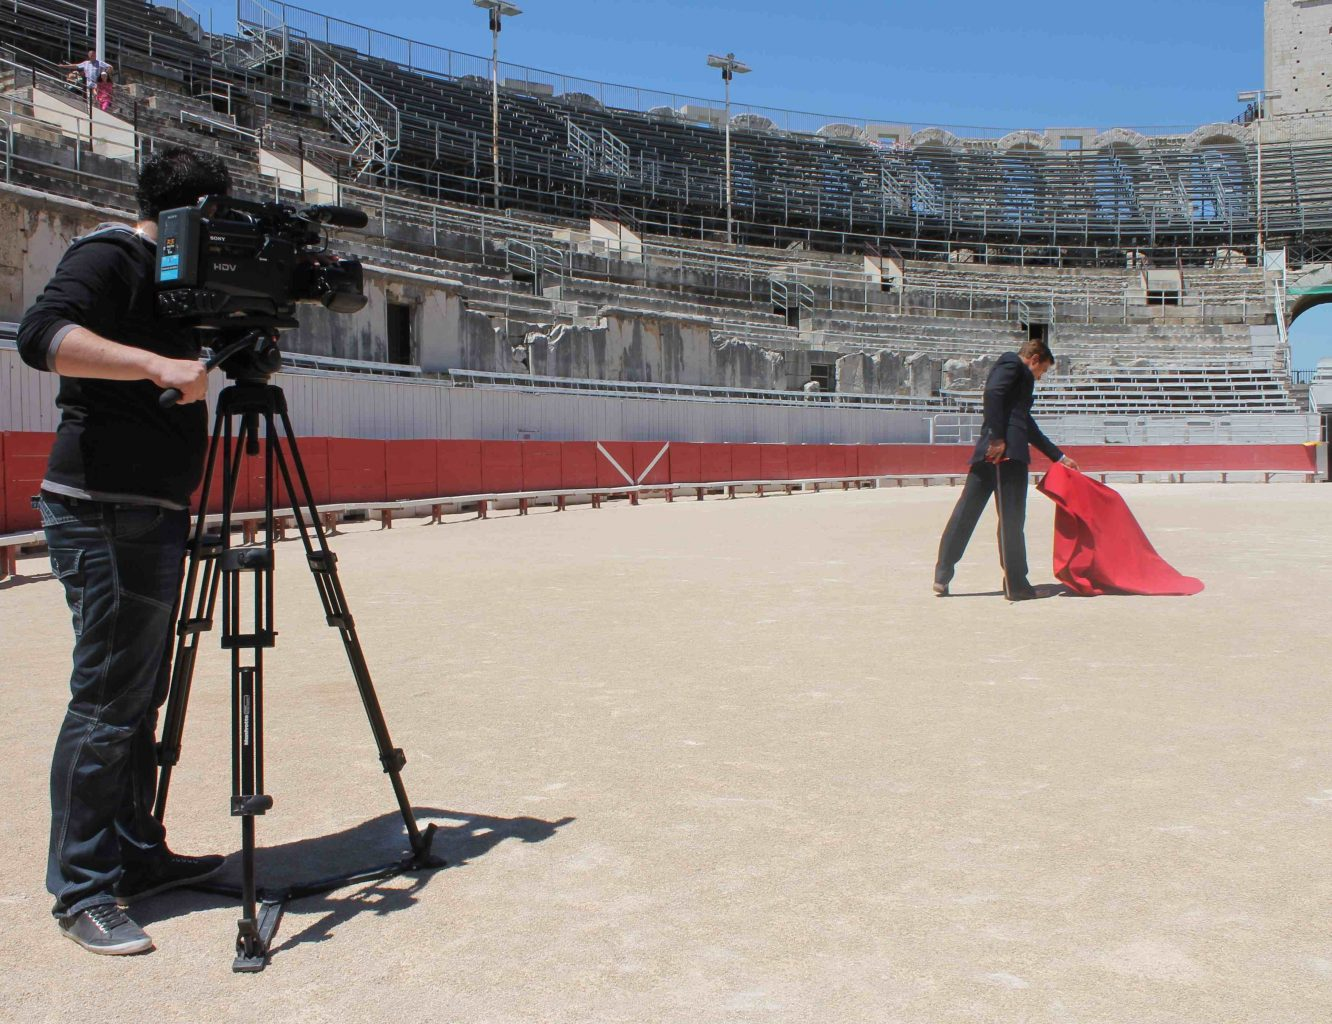 Tournage production arenes arles